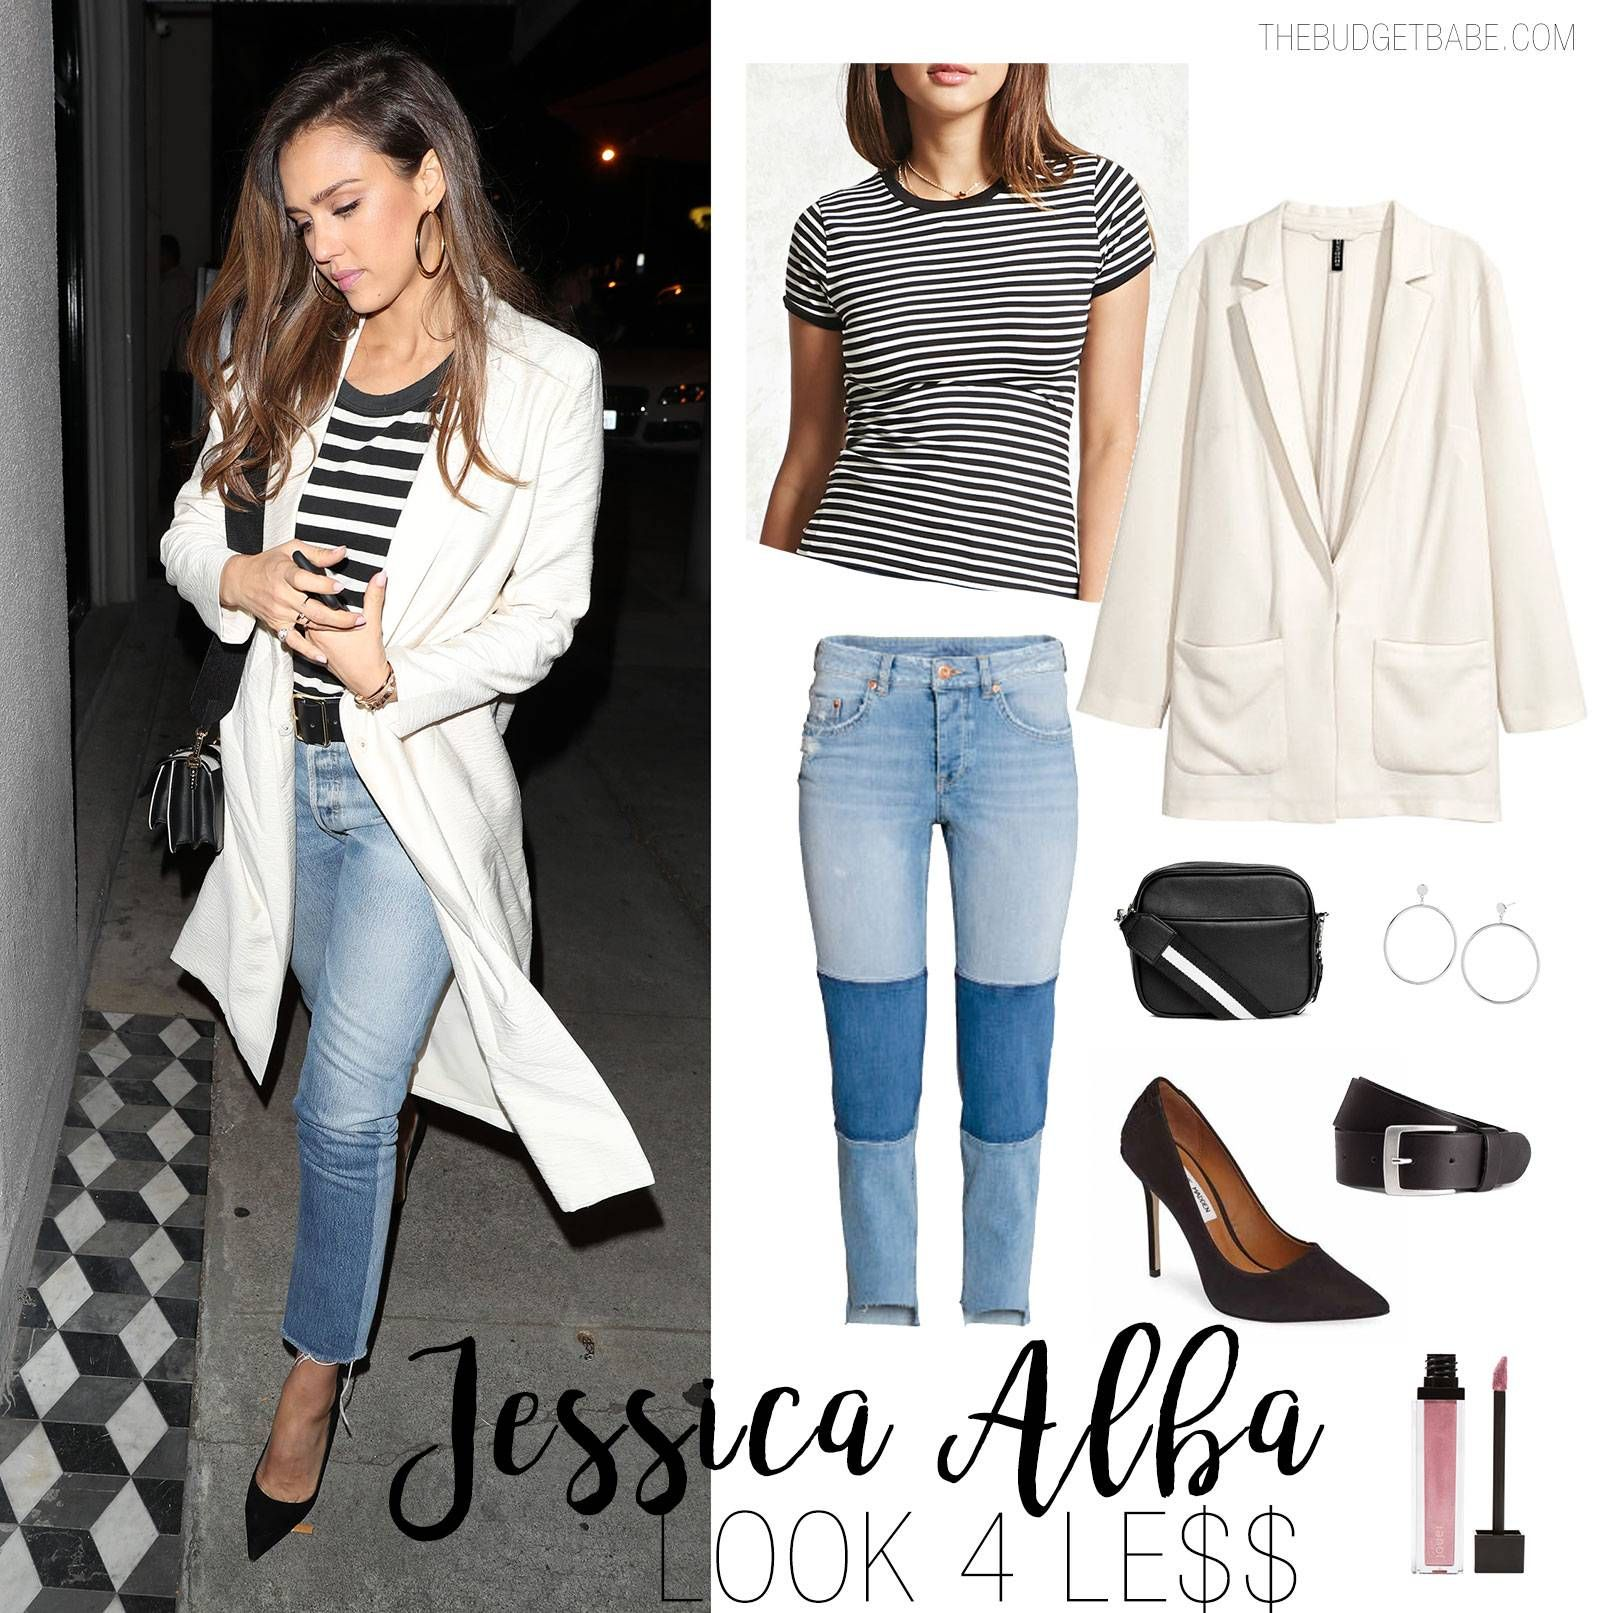 Jessica Alba striped top and white blazer look for less